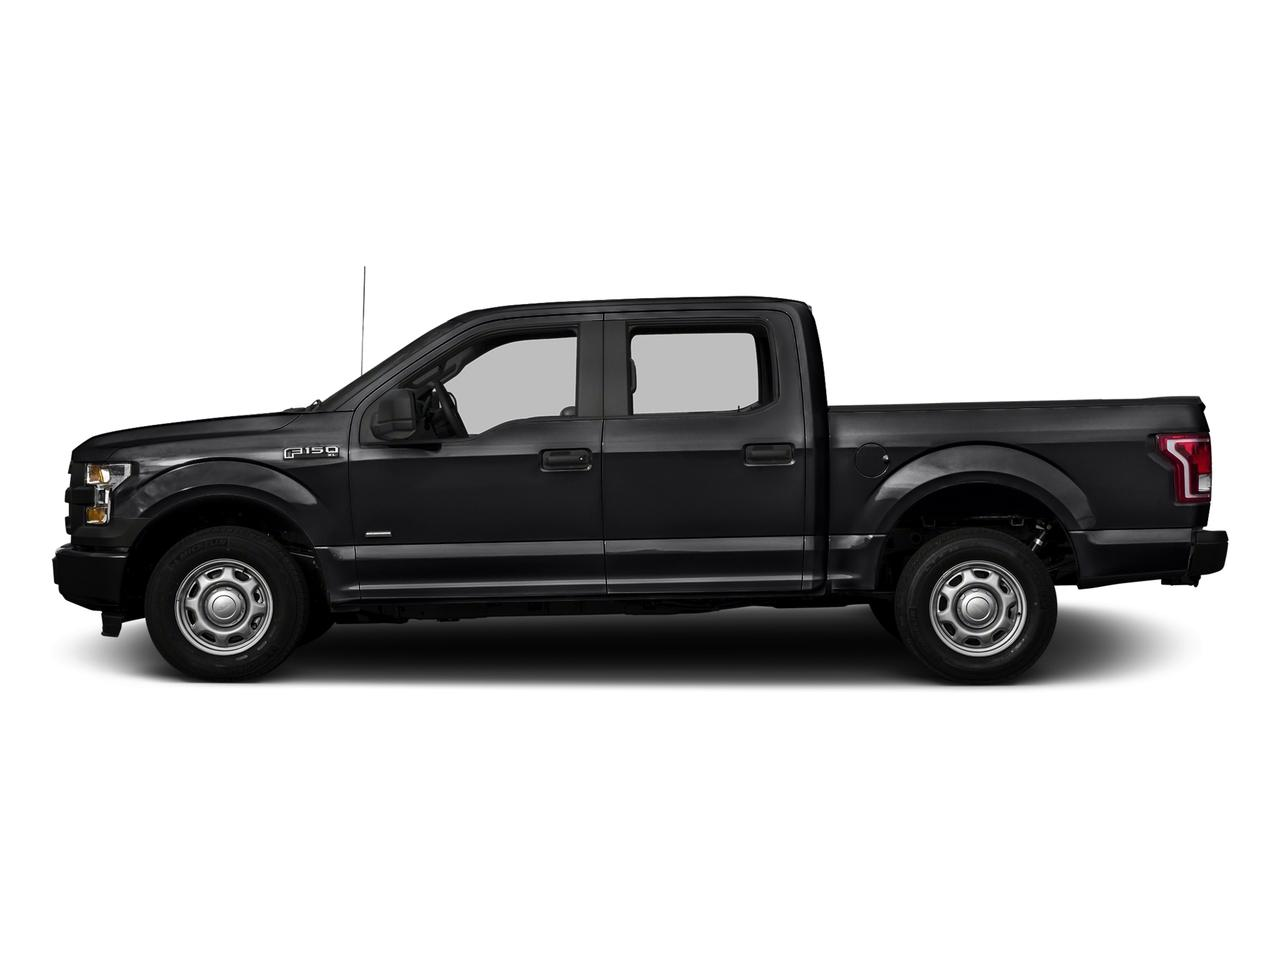 Used 2016 Ford F-150 Platinum with VIN 1FTEW1EG6GFA13780 for sale in Willmar, Minnesota